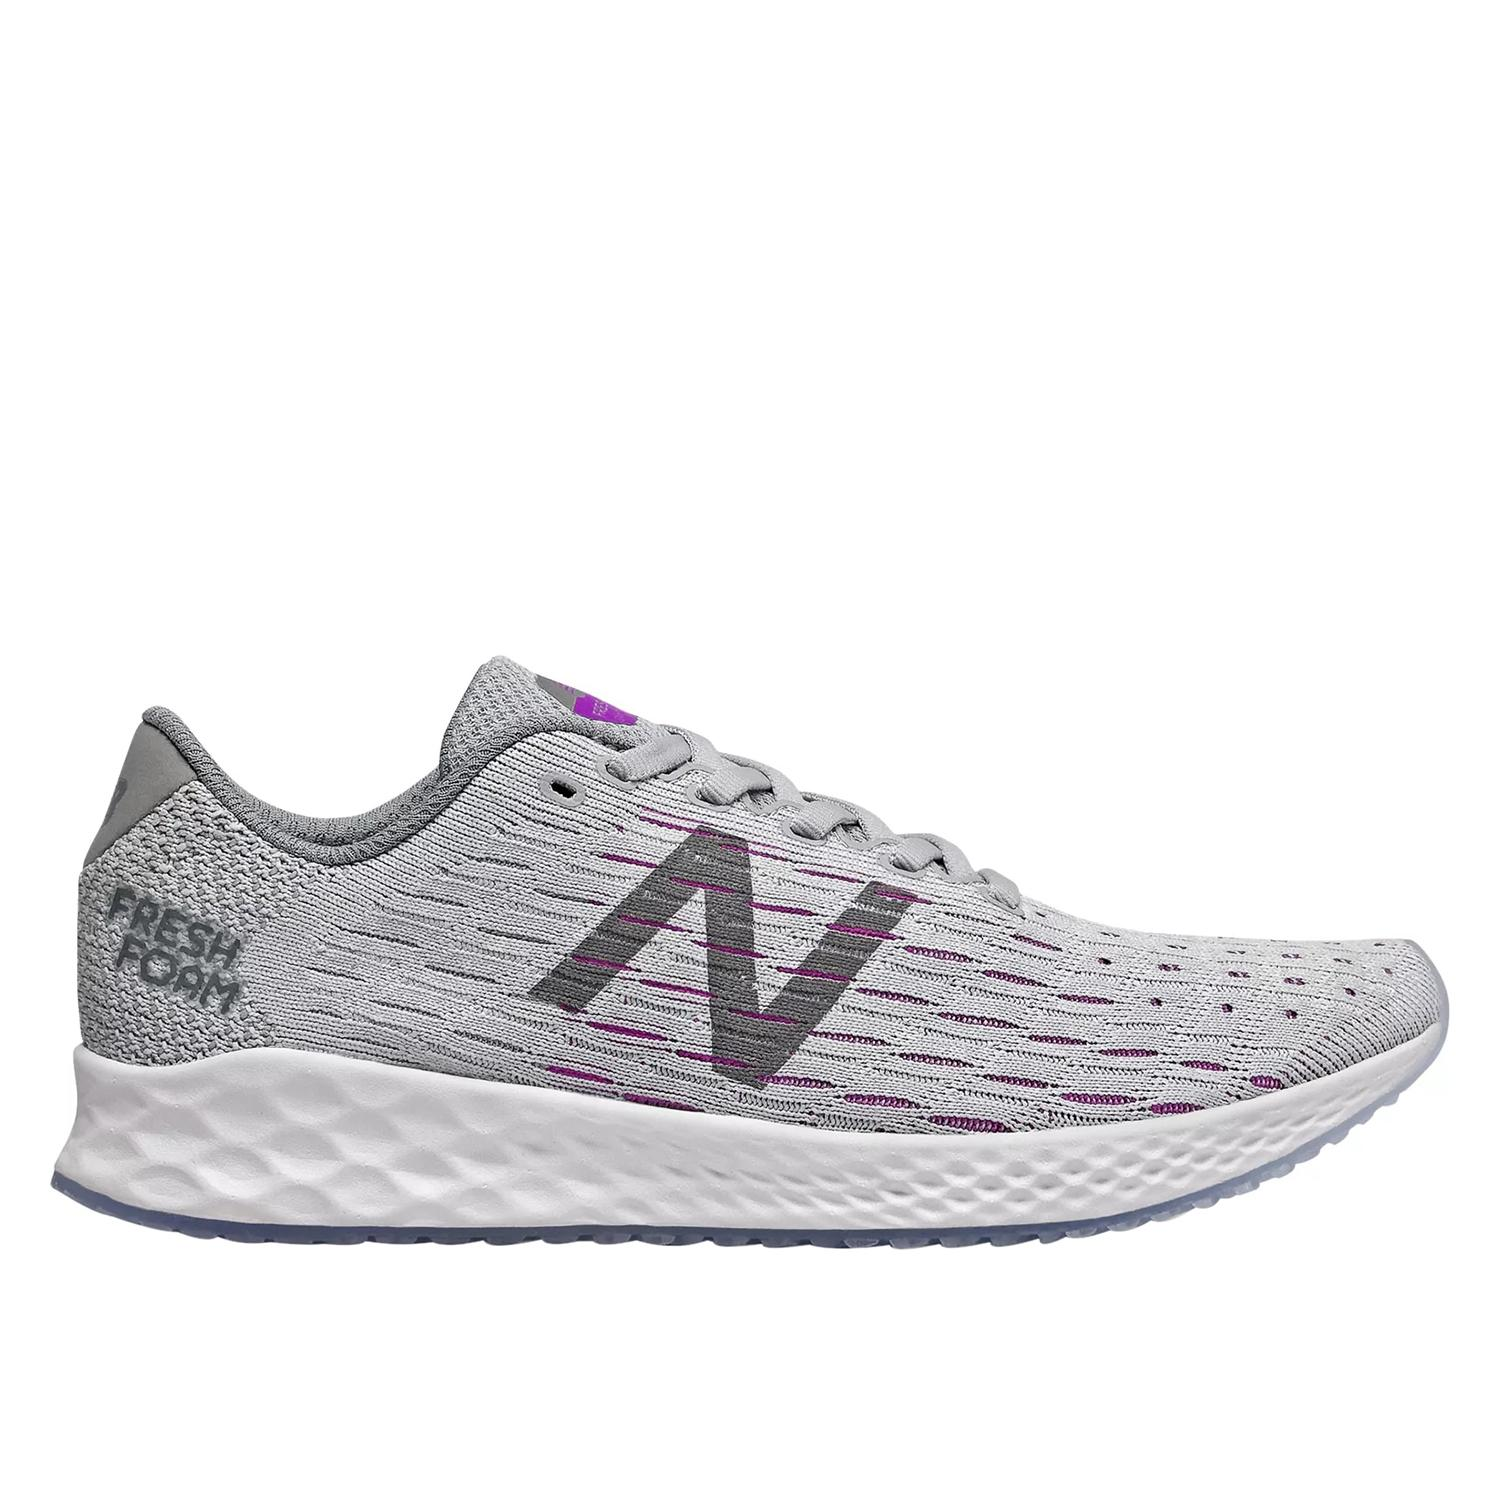 outlet store 3636d 0c848 New Balance Fresh Foam Zante Pursuit Women s Running Shoe